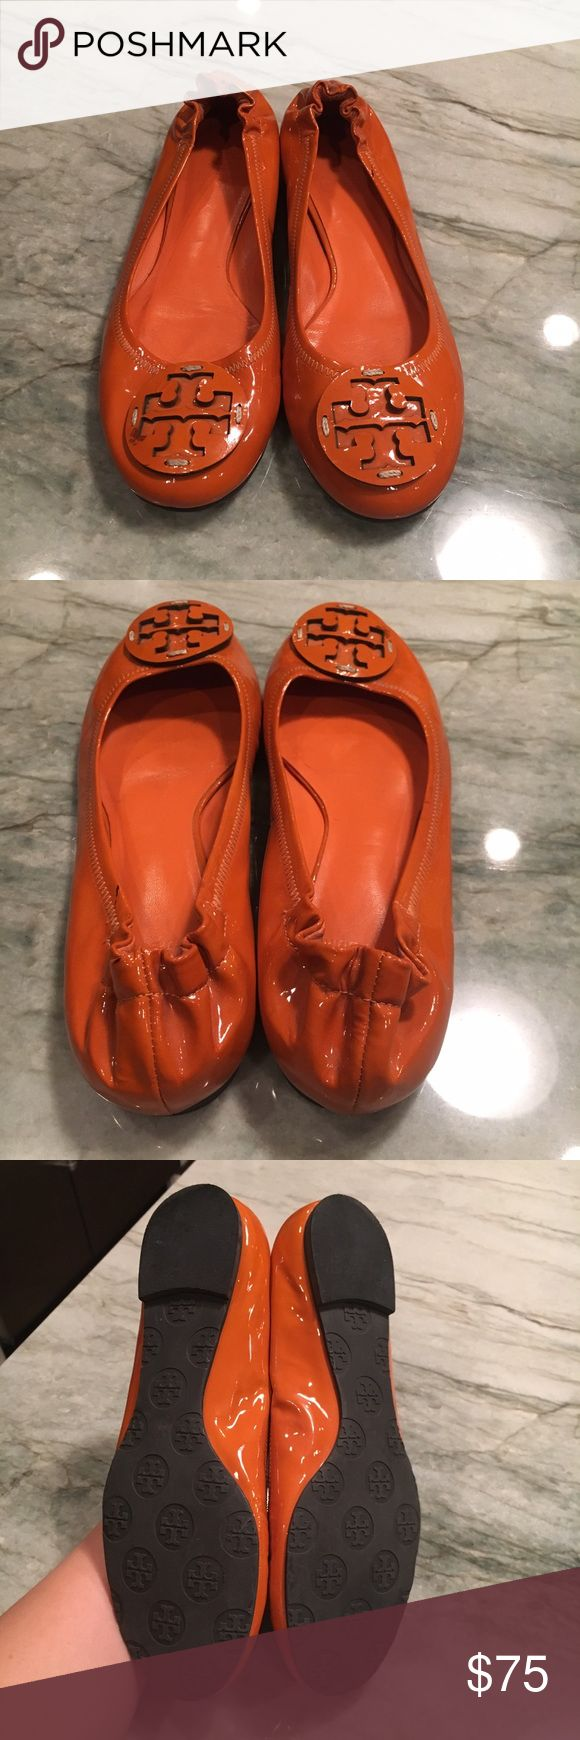 Tory Burch Flats Authentic orange Tory Burch Reva ballet flats. Size 7 but also fit a 6.5. Great condition, just some scuffs on the patent leather as shown. Idk anything about shoe marks but you could probably get them out. Tory Burch Shoes Flats & Loafers